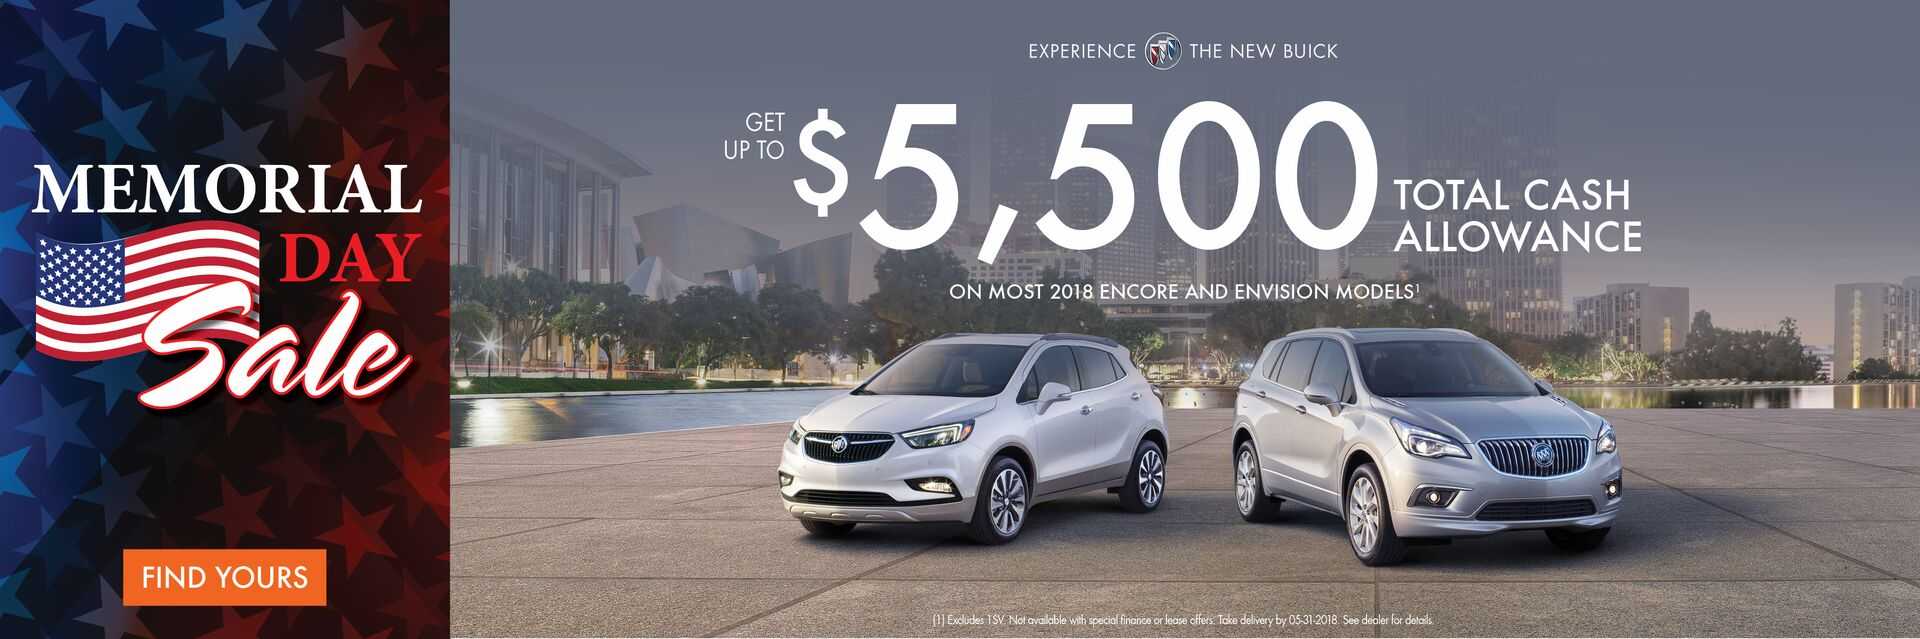 Great offers on new Buick at Holiday Automotive in Fond du Lac, WI